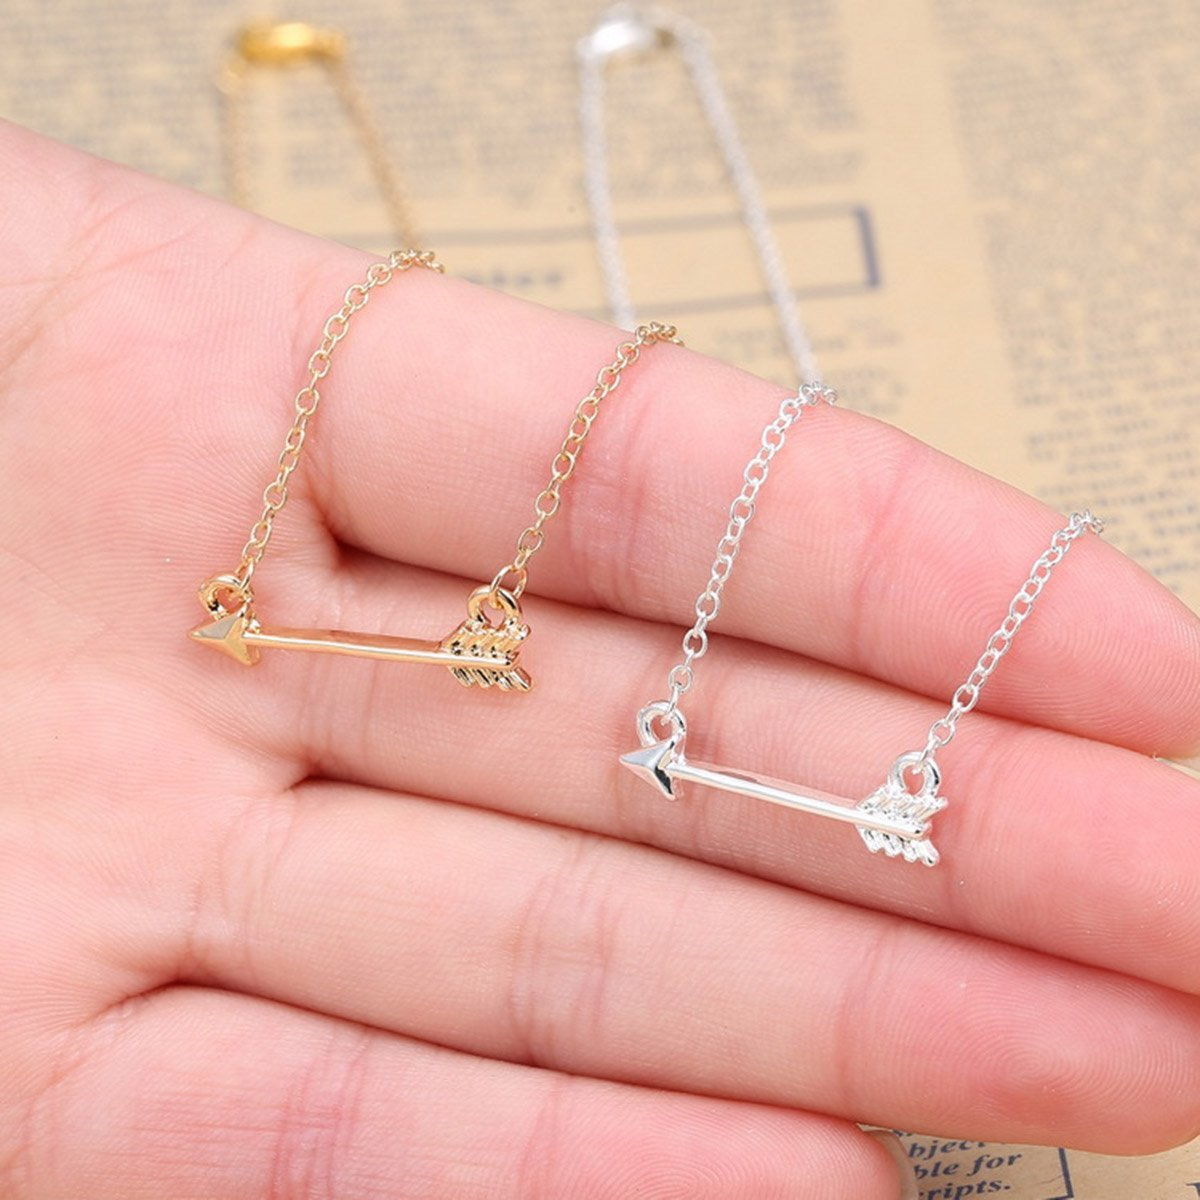 Amazon.com: Silver Tone Arrow Pendant Necklace for Women Men Jewelry ...